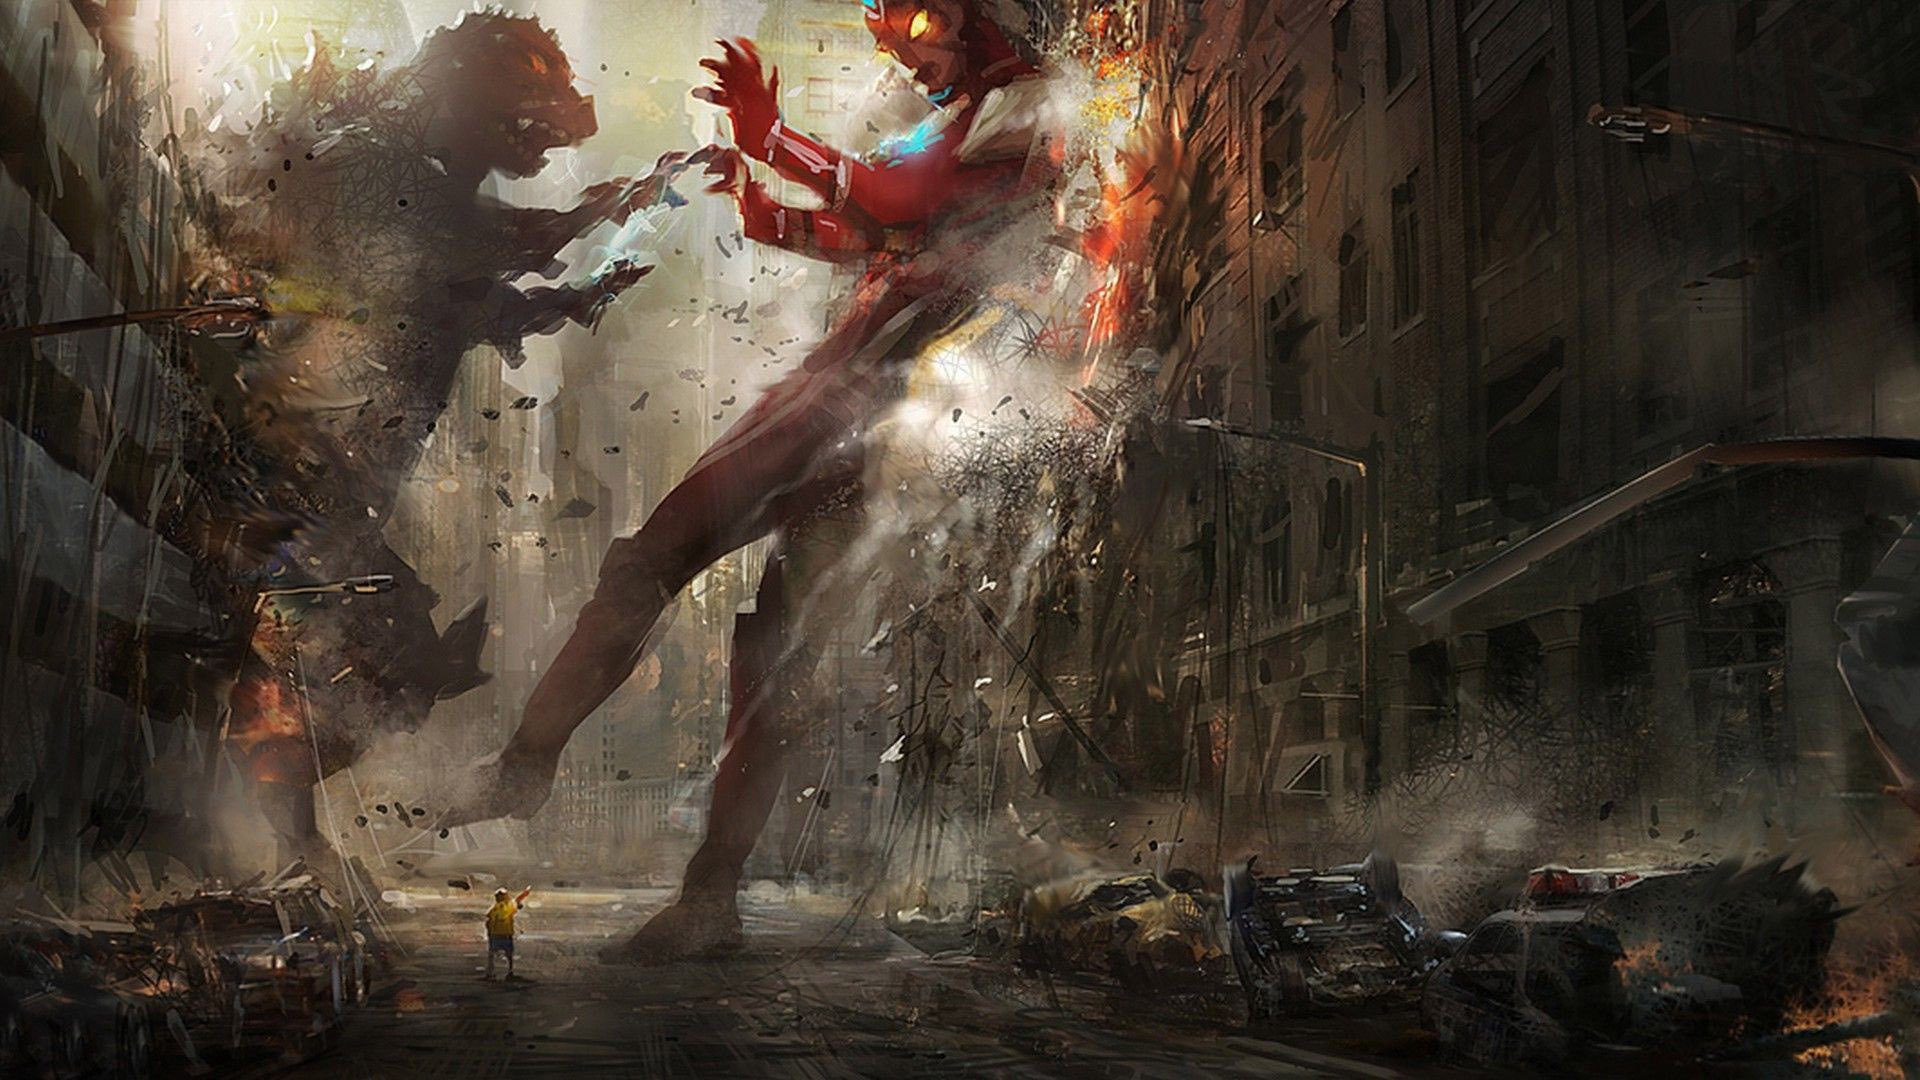 Iron Man vs Godzilla wallpaper